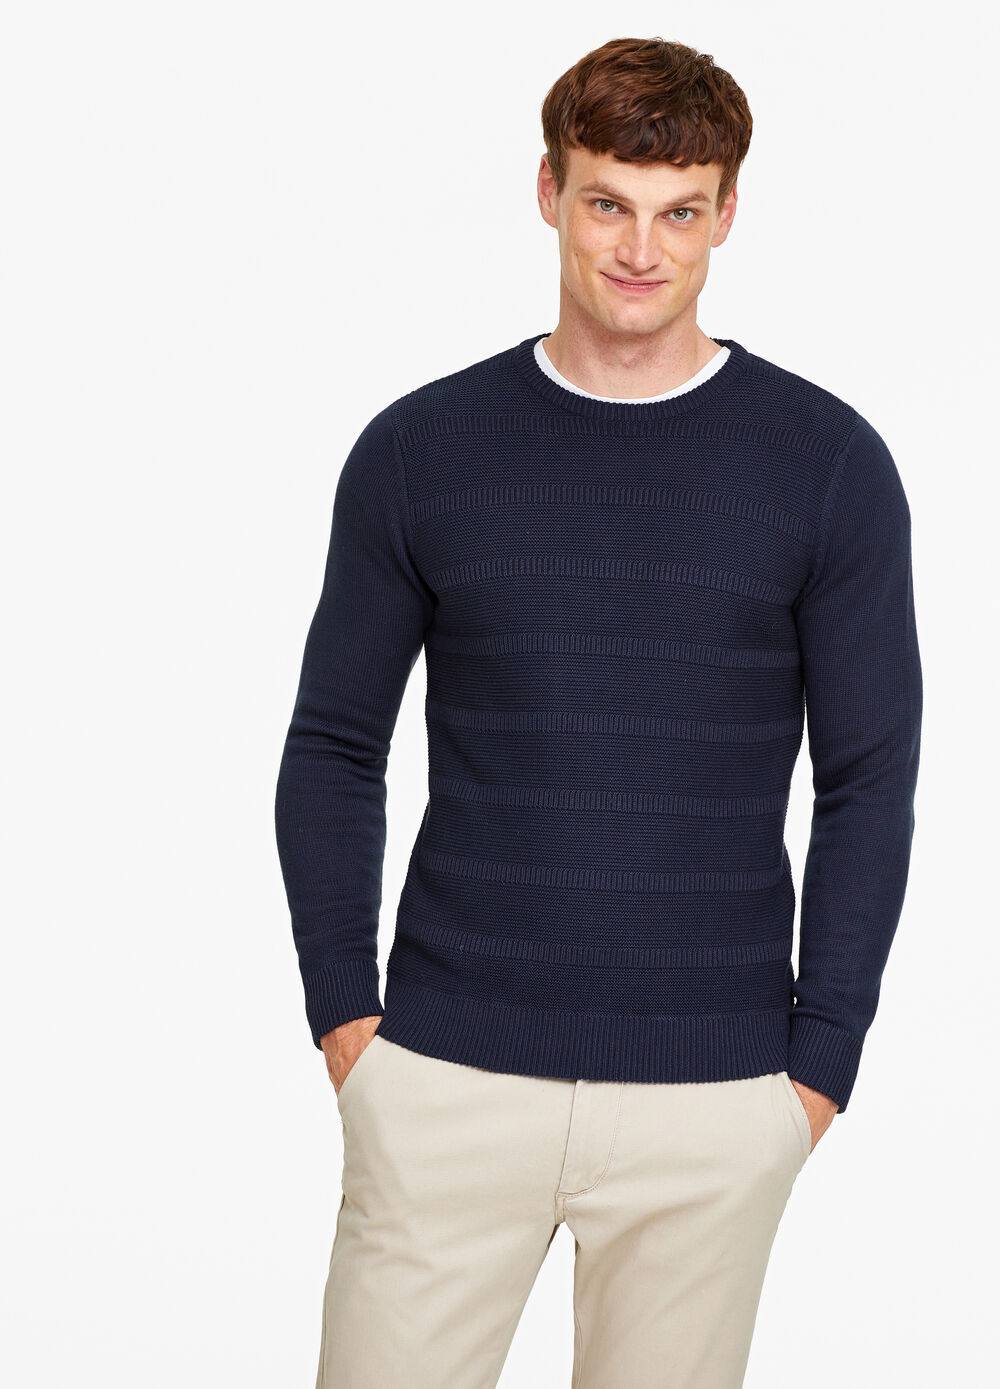 Cotton blend knitted pullover with striped pattern